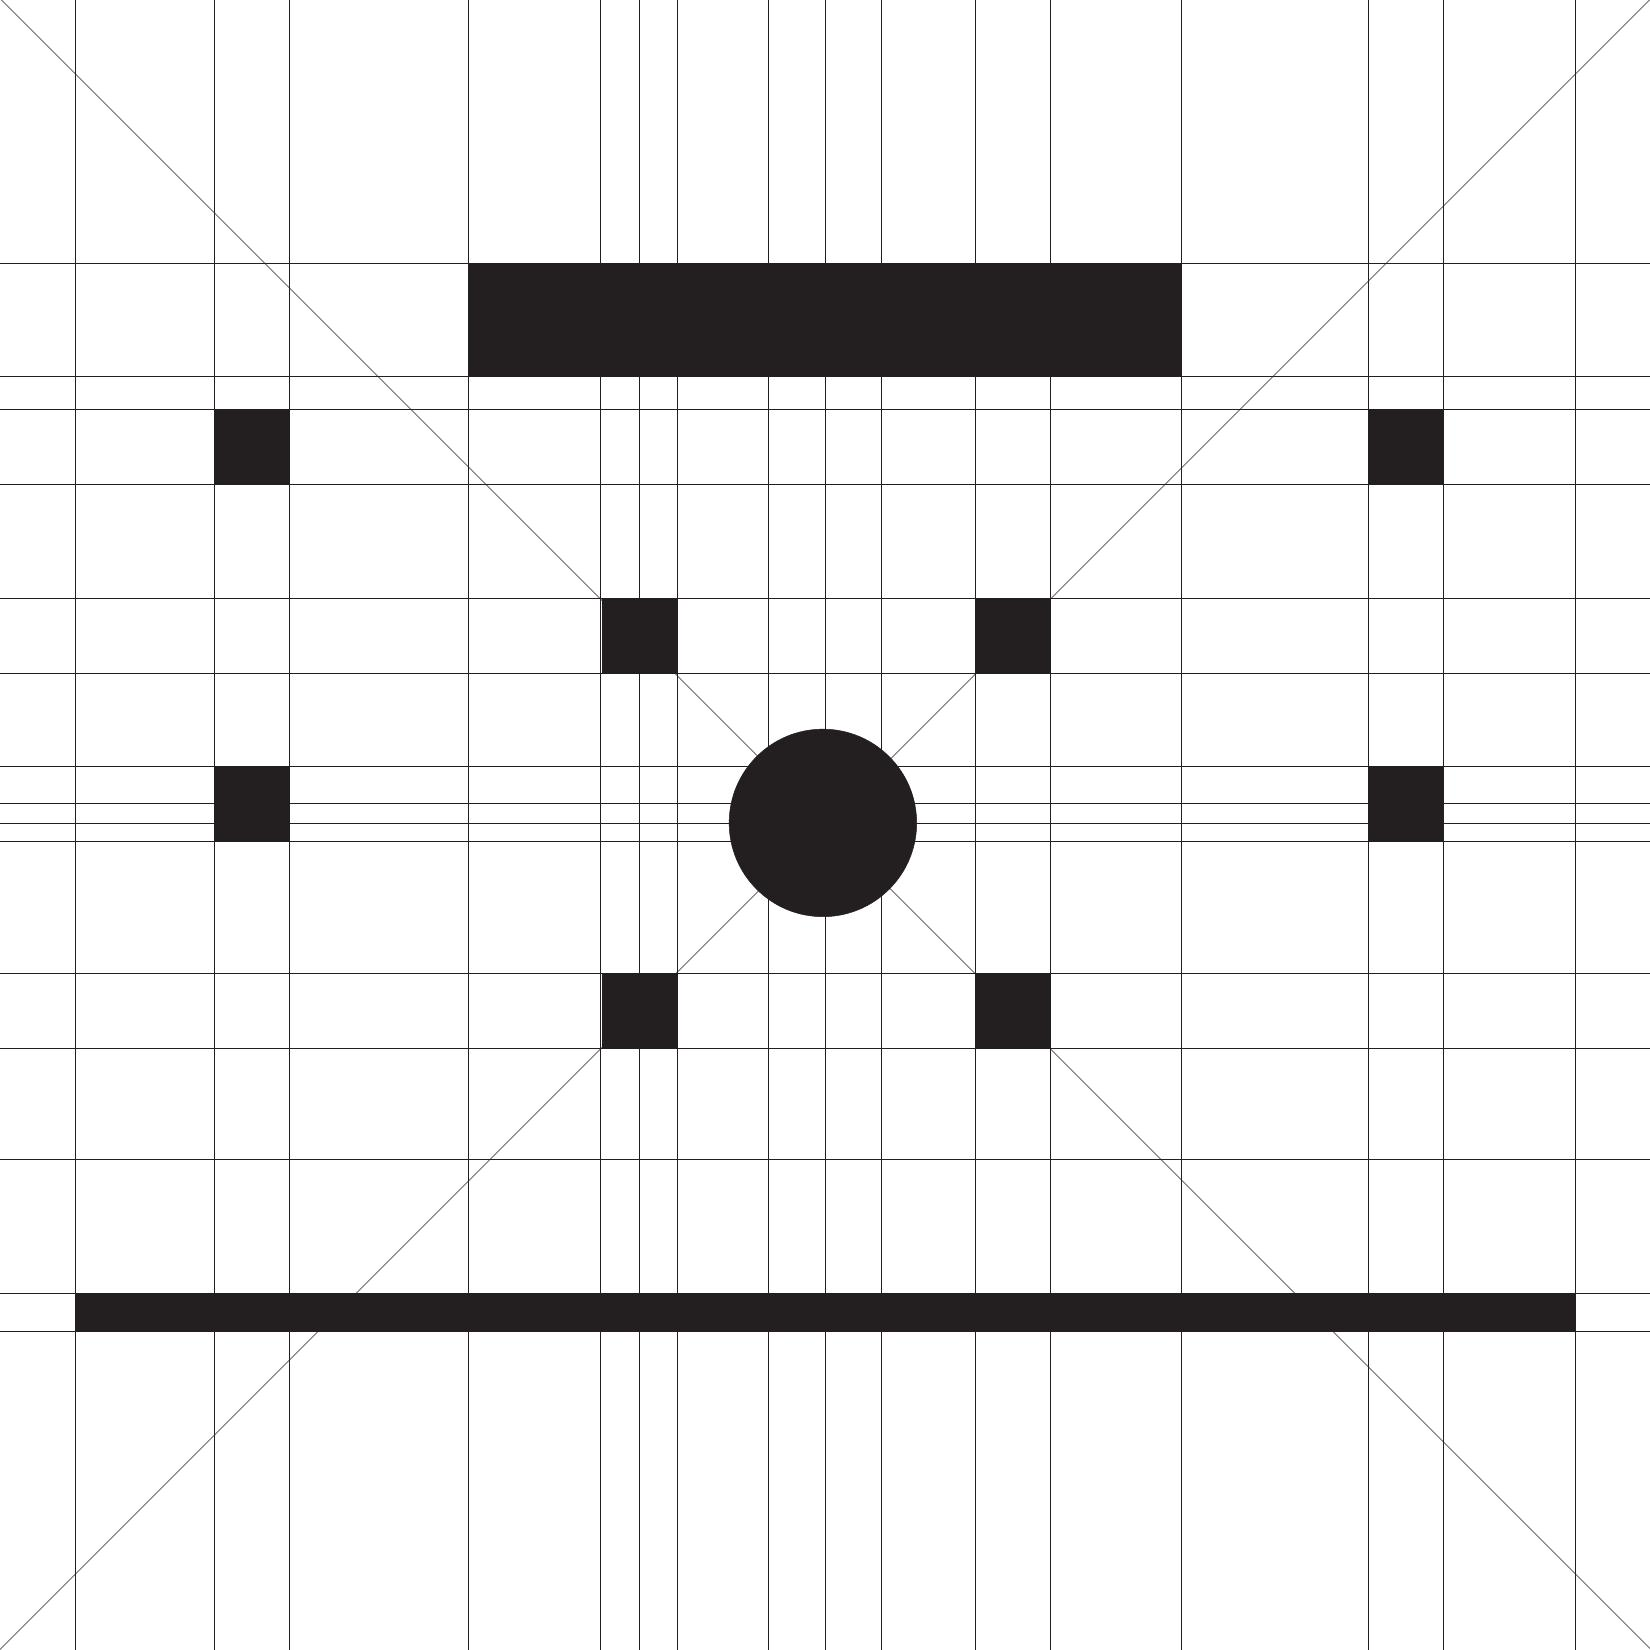 Assignment5_process2_#1_shapes.lines_000001.jpg